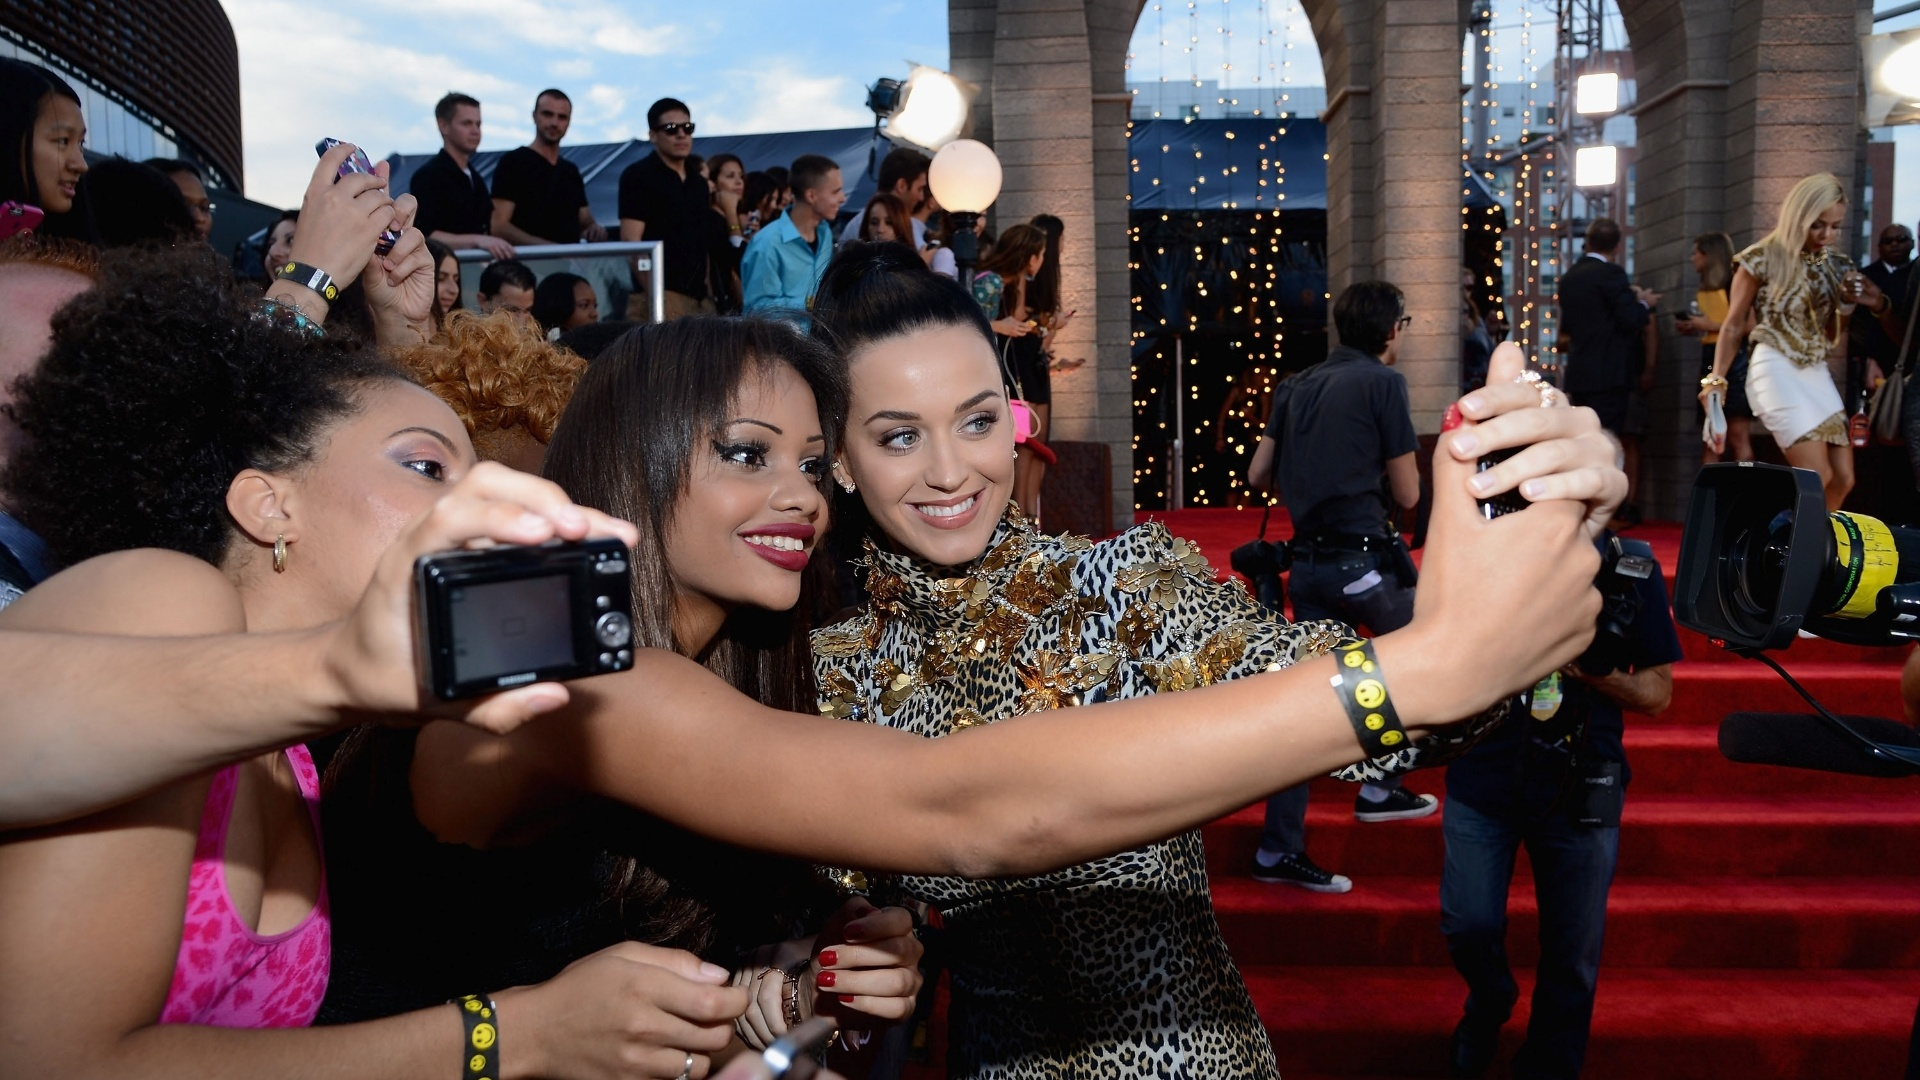 25.ago.2013 - Katy Perry tira foto com fãs no tapete vermelho do Barclays Center, em Nova York, para a cerimônia do Video Music Awards 2013